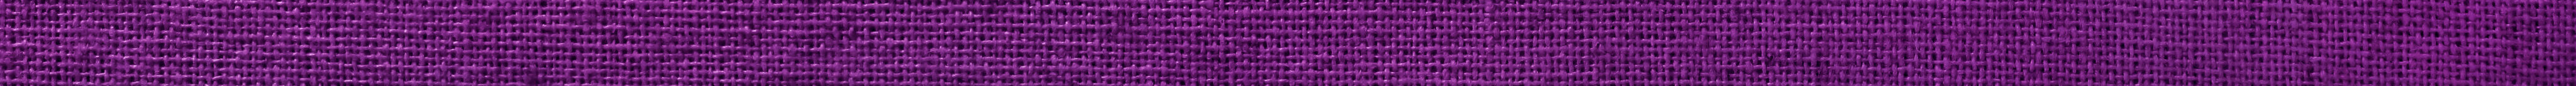 Purple fabric cloth texture background, seamless pattern of natural textile.